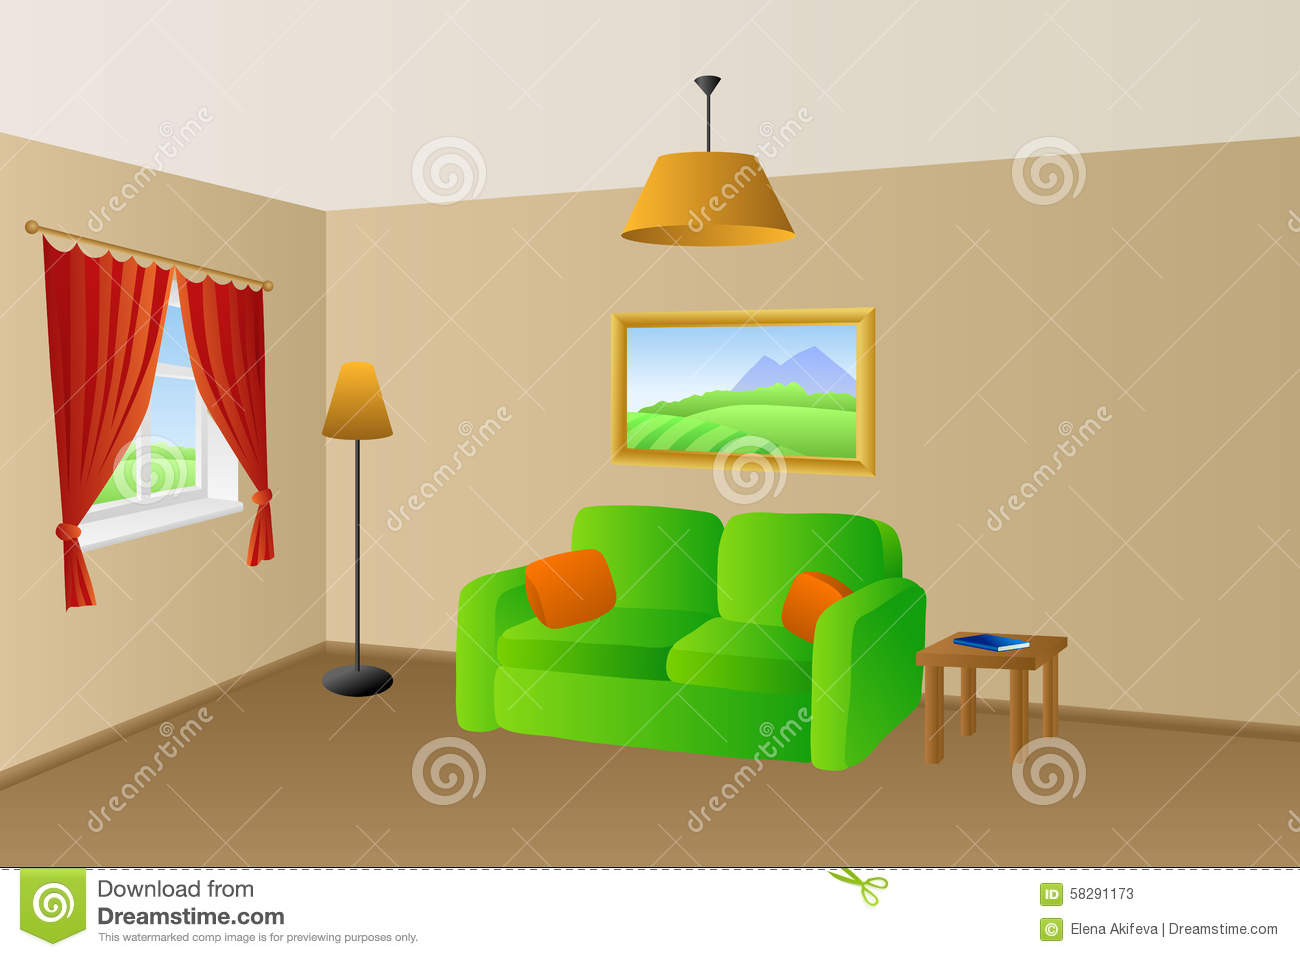 living room with orange sofa stock image - image: 8815301